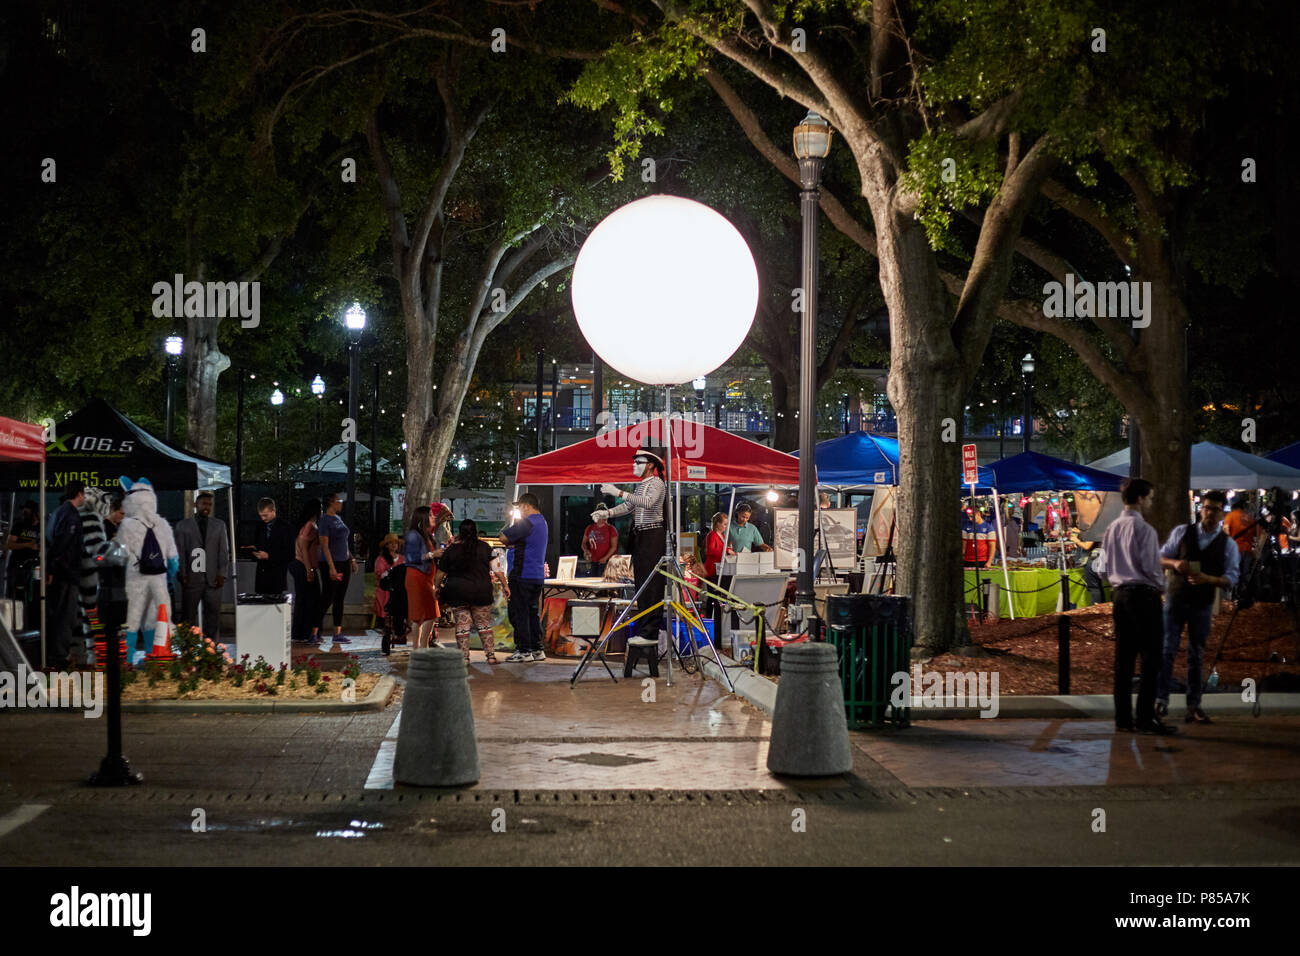 Street artist performing under a glowing orb at First Wednesday Art Walk in Jacksonville, Florida, on February 7, 2018. - Stock Image